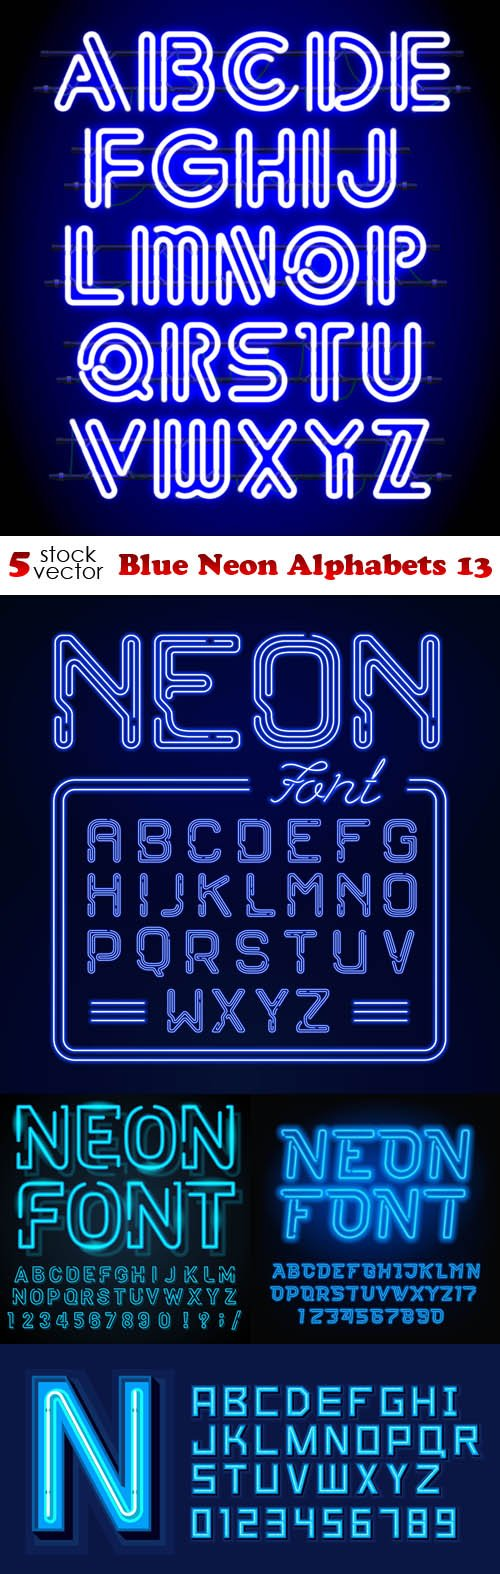 Vectors - Blue Neon Alphabets 13